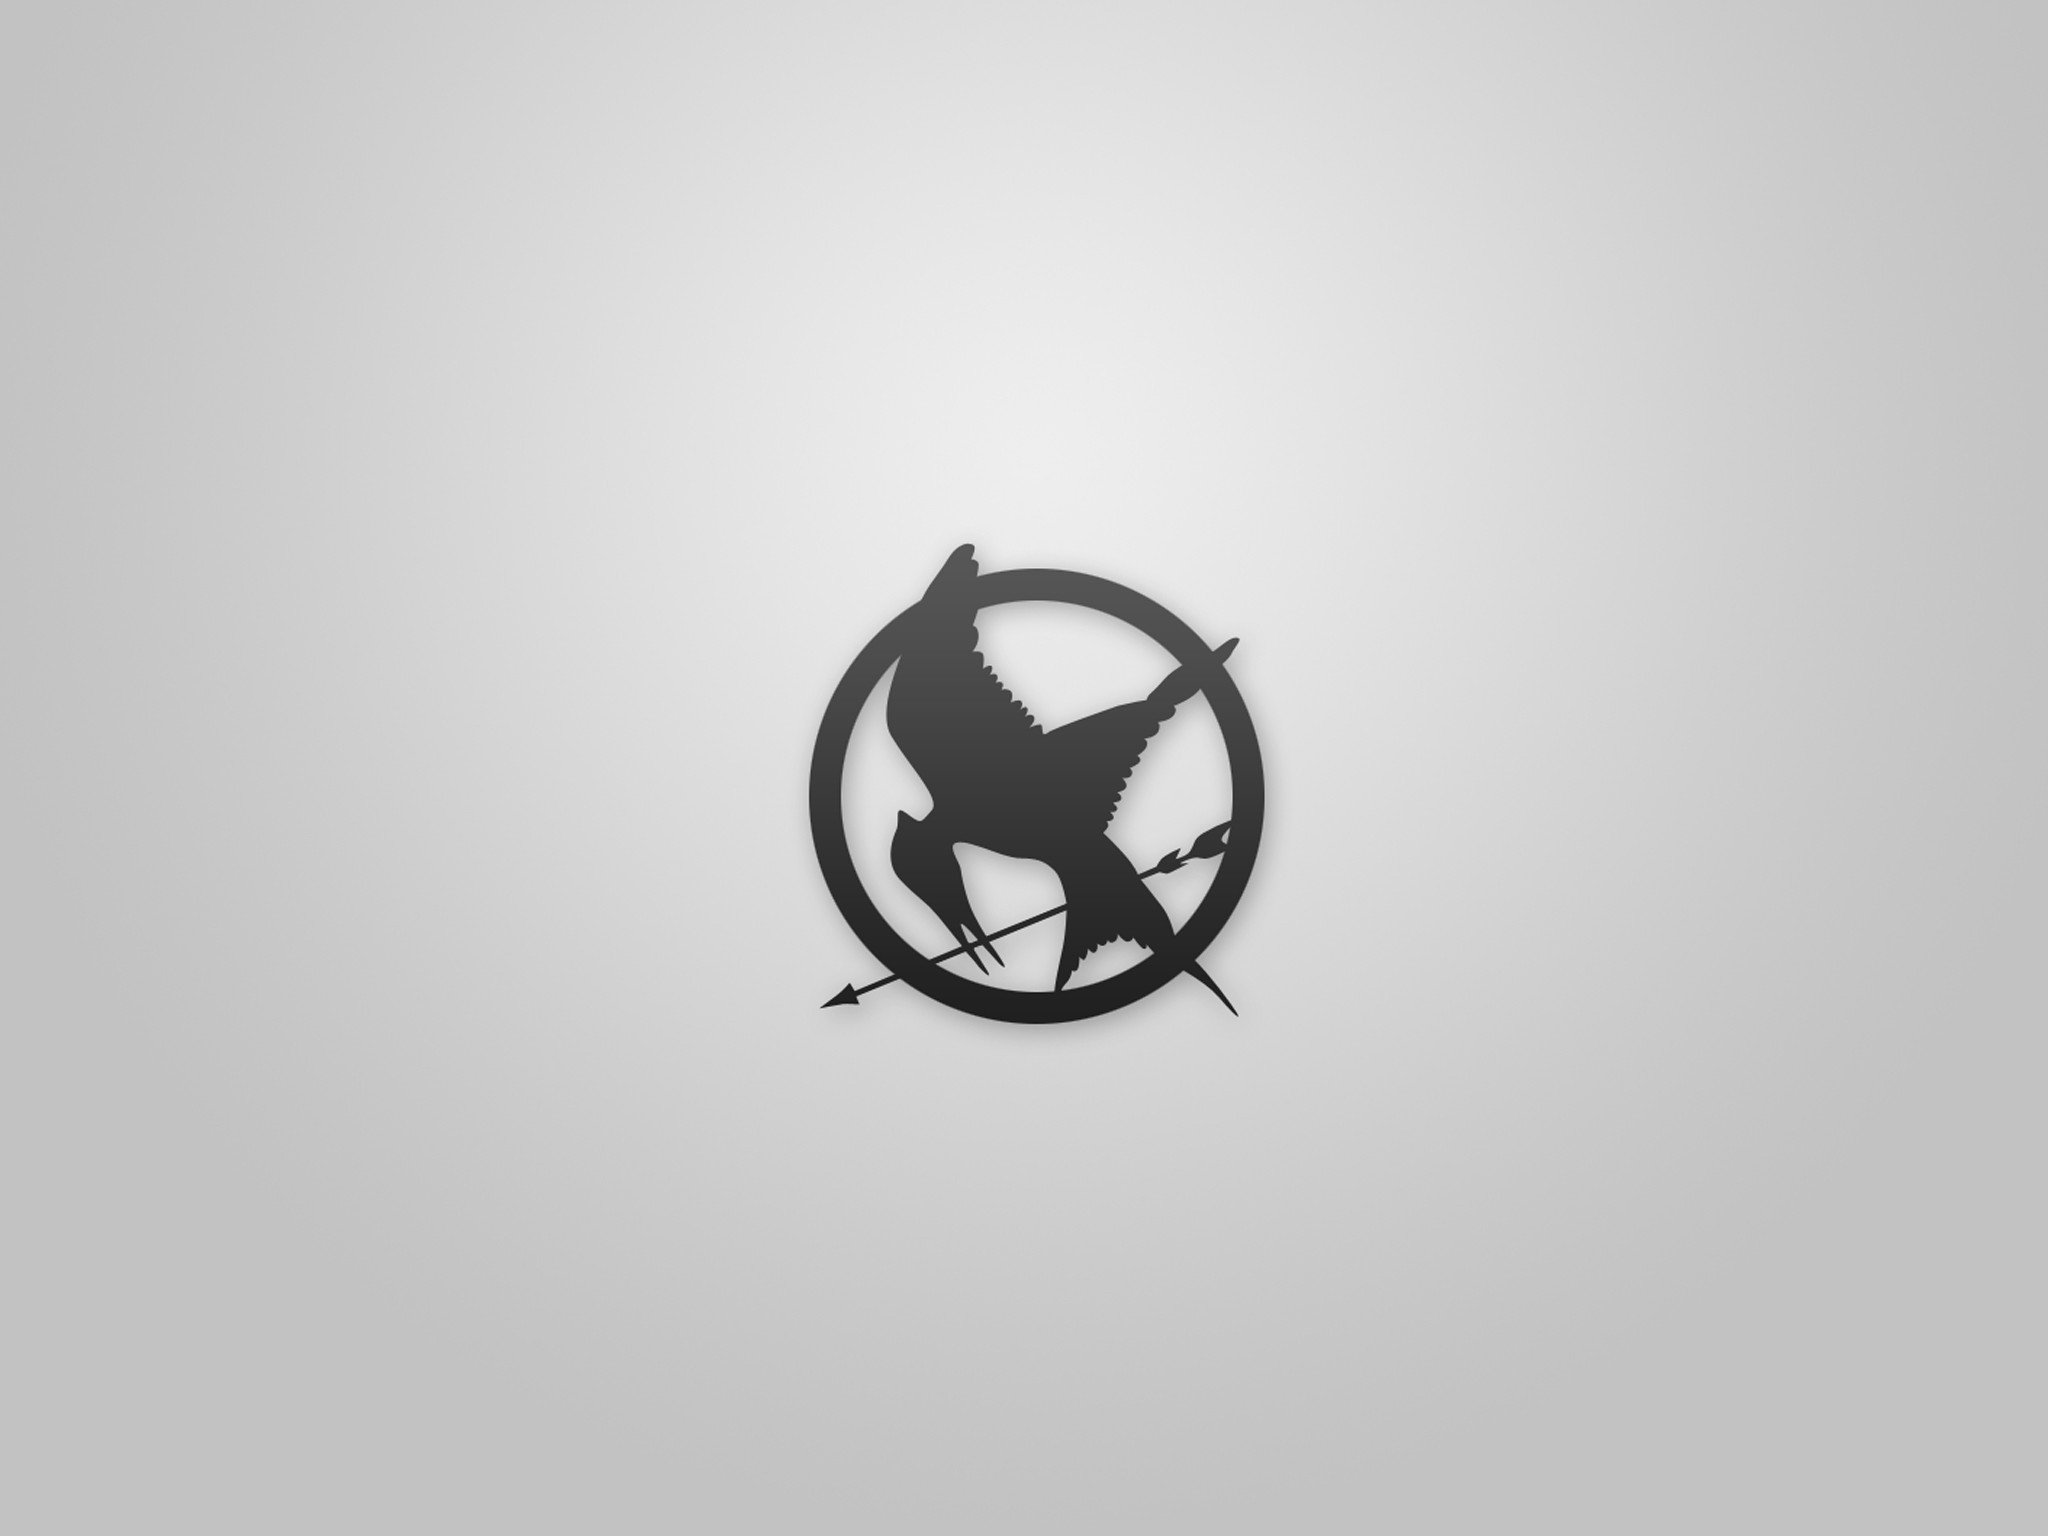 Icons The Hunger Games Mockingjay wallpaper | 2048x1536 | 252775 | WallpaperUP